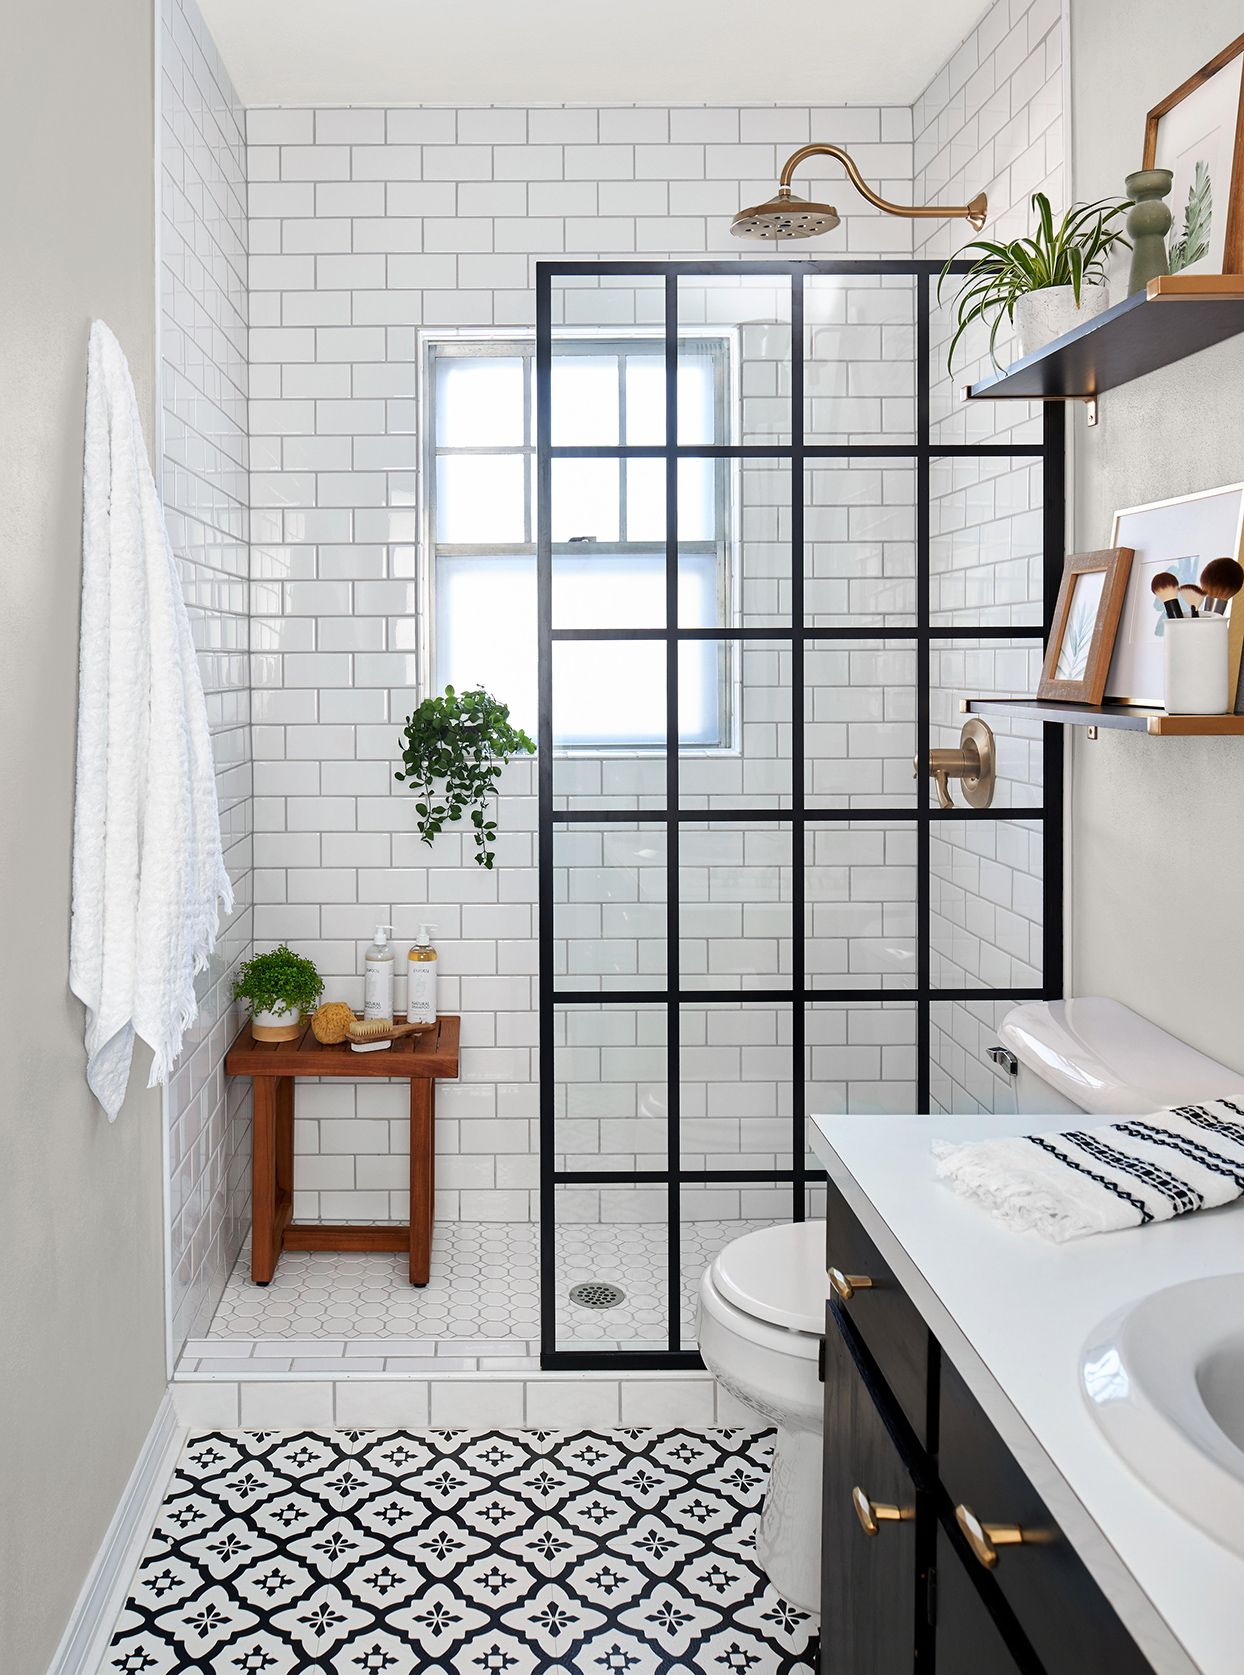 This Small Bath Makeover Blends Budget-Friendly DIYs and High-End